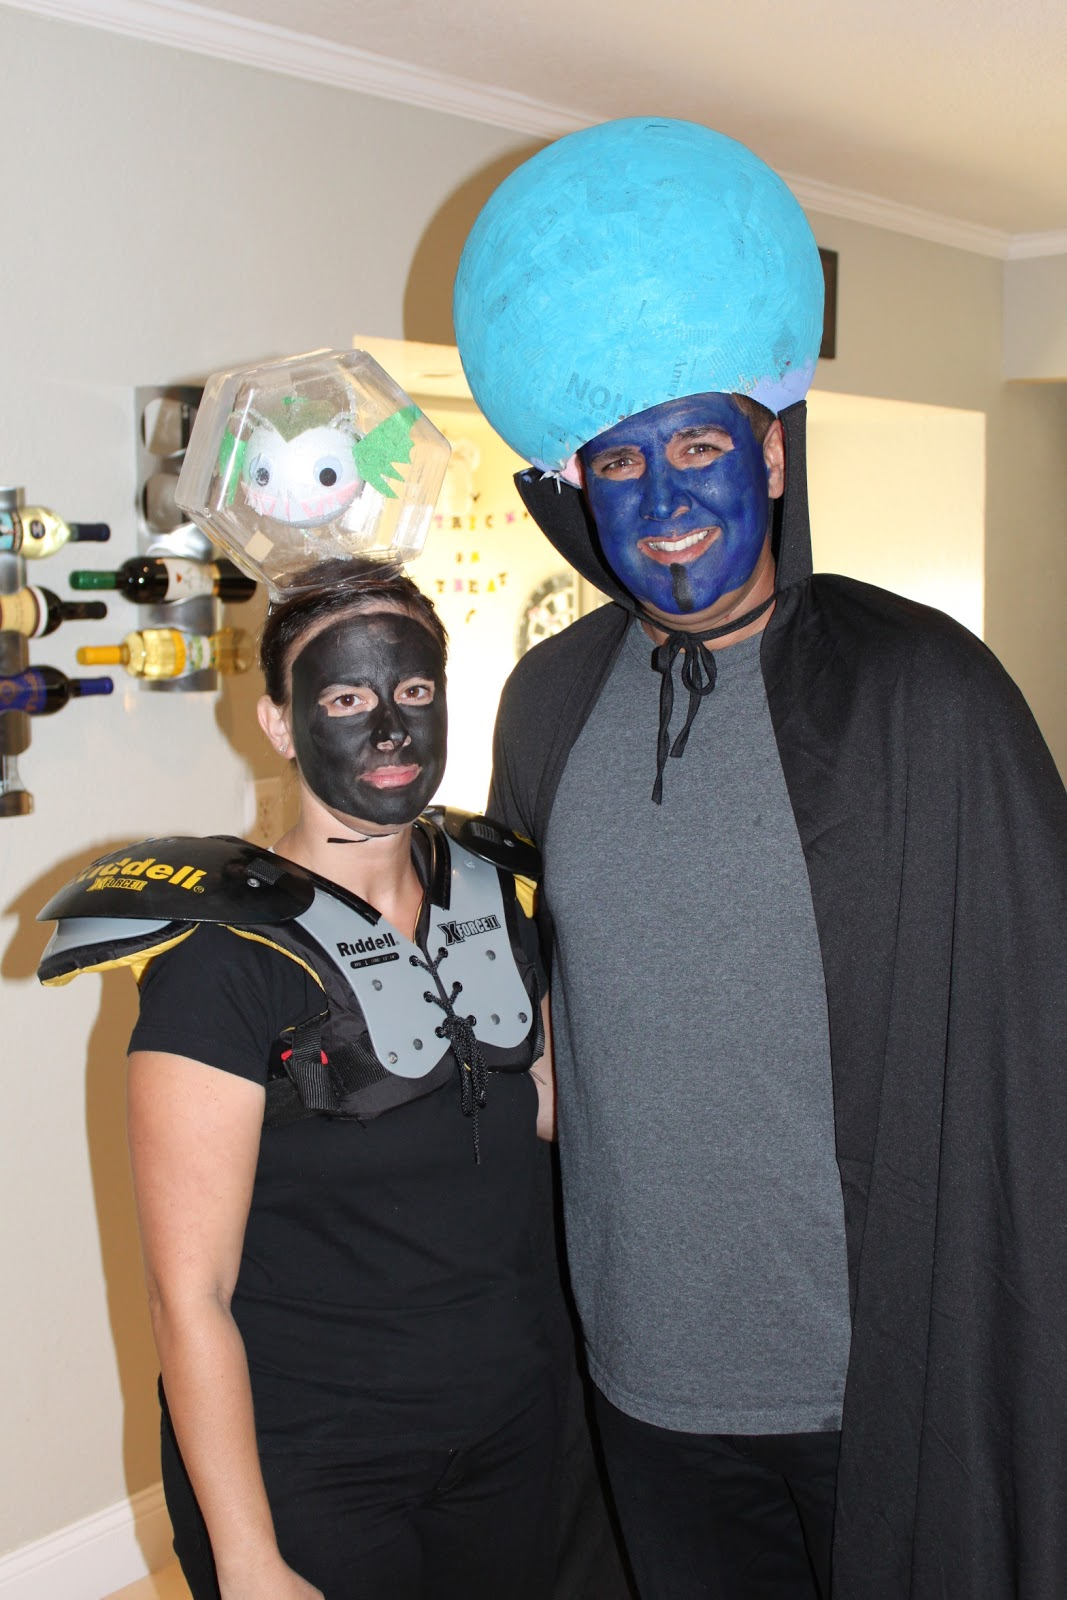 MegaMind u0026 Minion  & The Exhausted Mom: Couples Halloween Costume Ideas